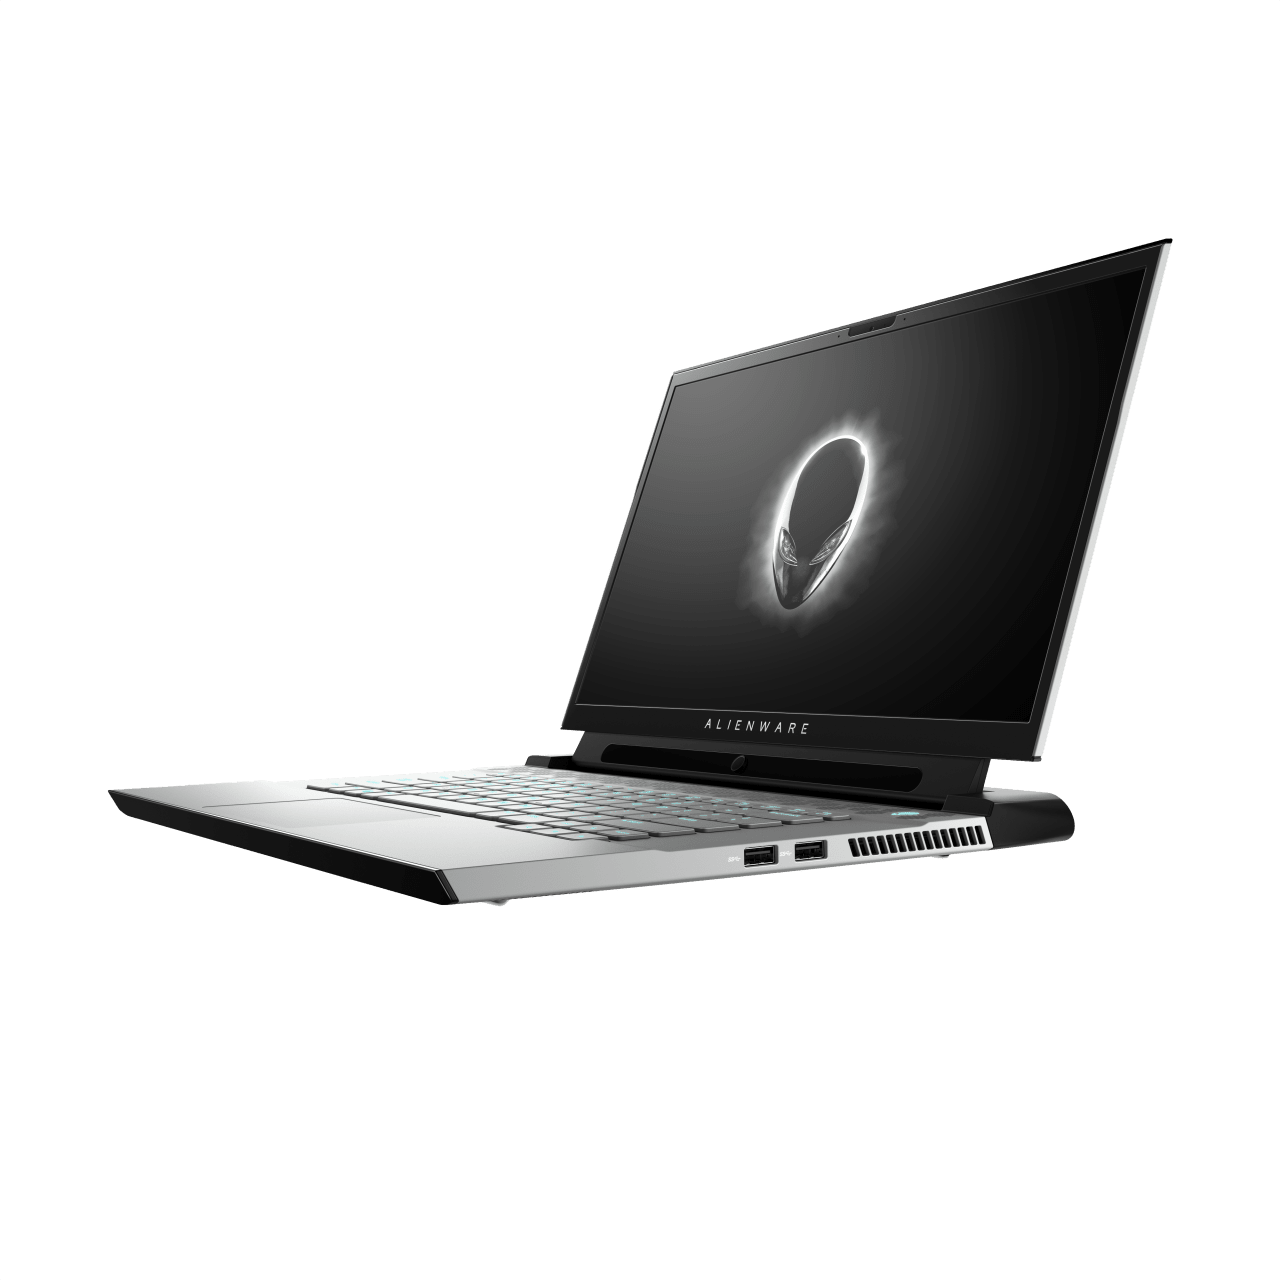 Black / White Alienware M15 R2.3